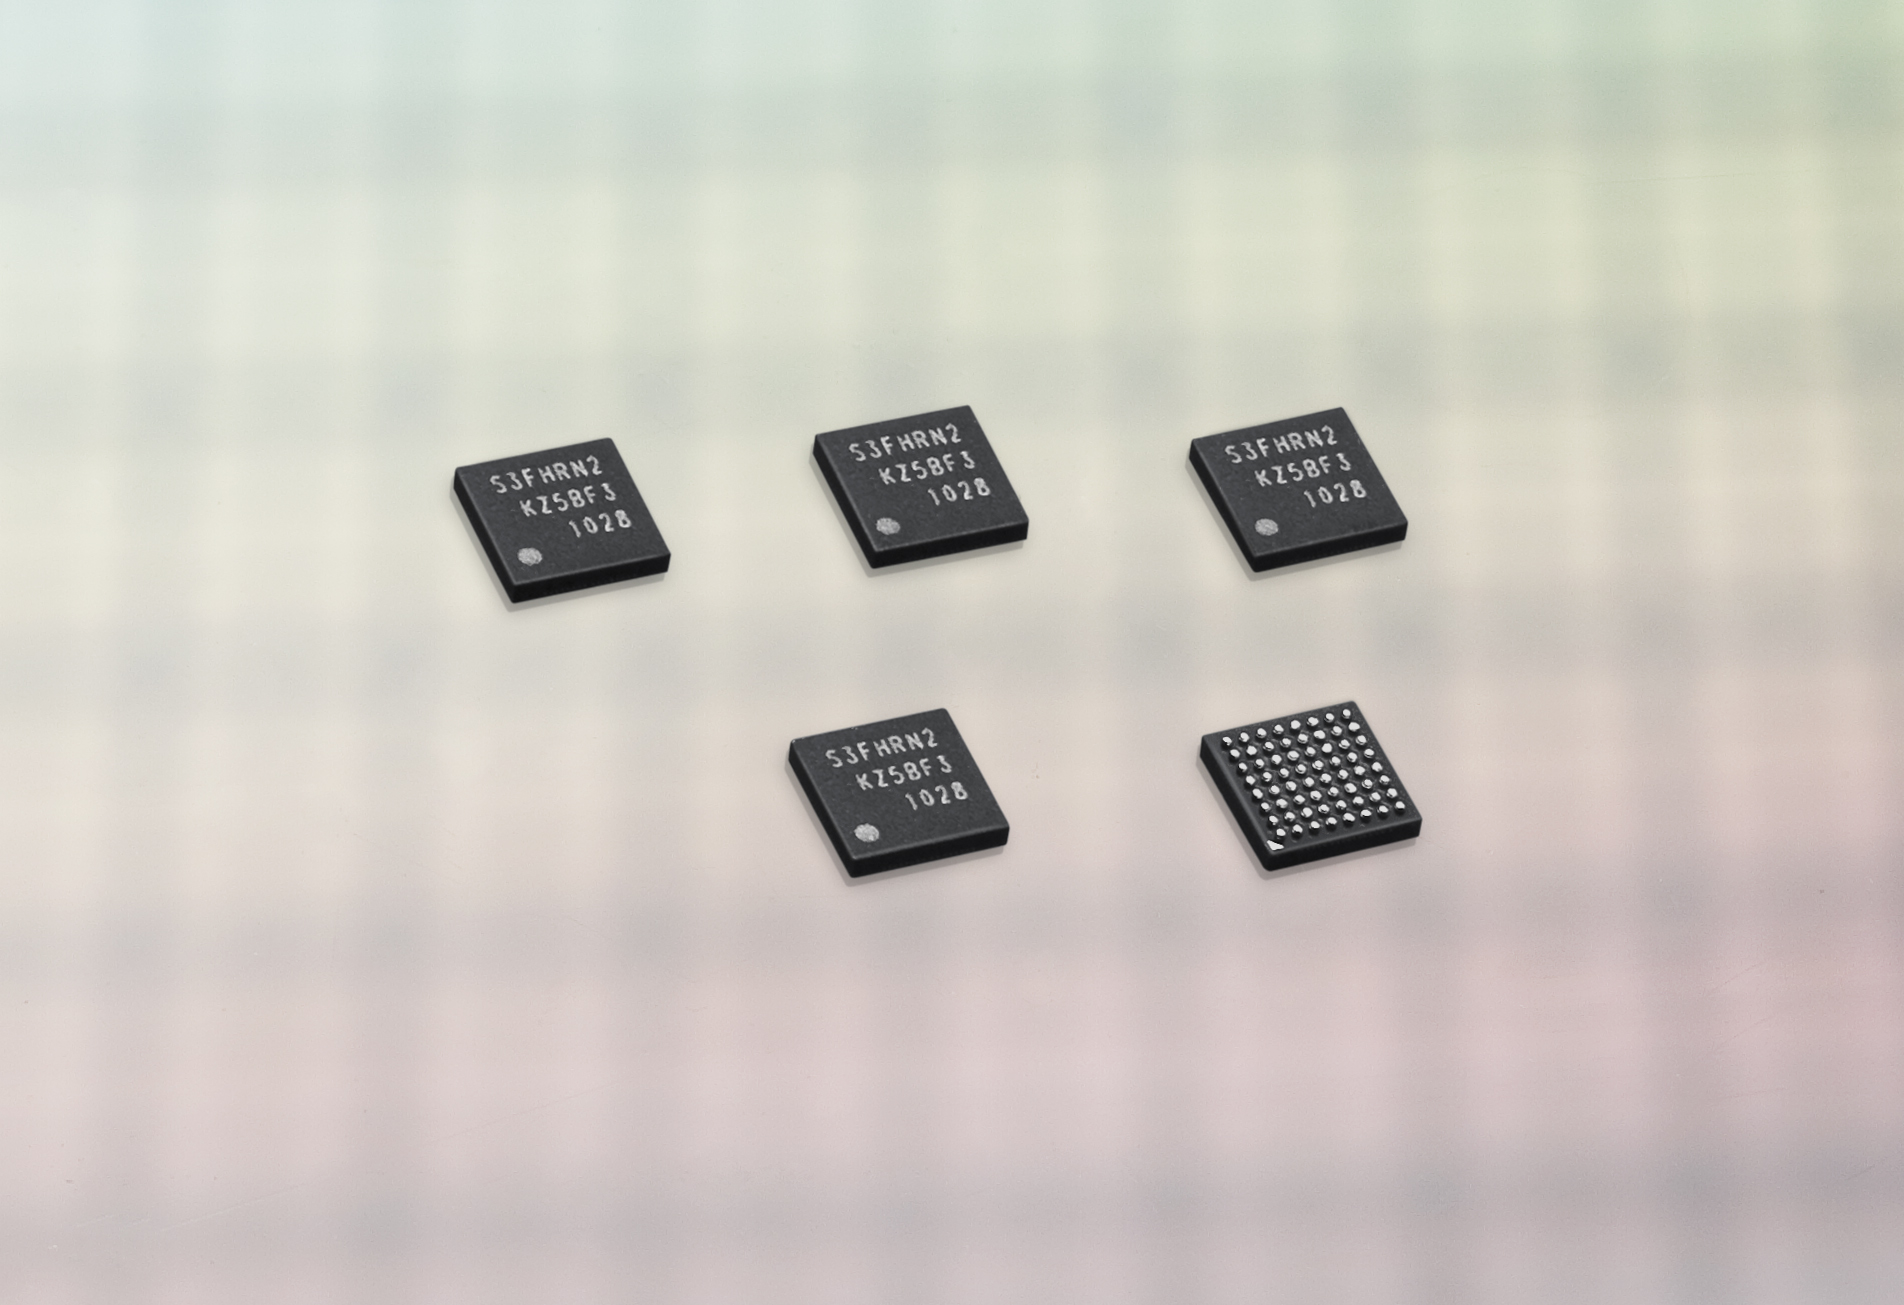 Samsung's New Near Field Communications (NFC) Chips